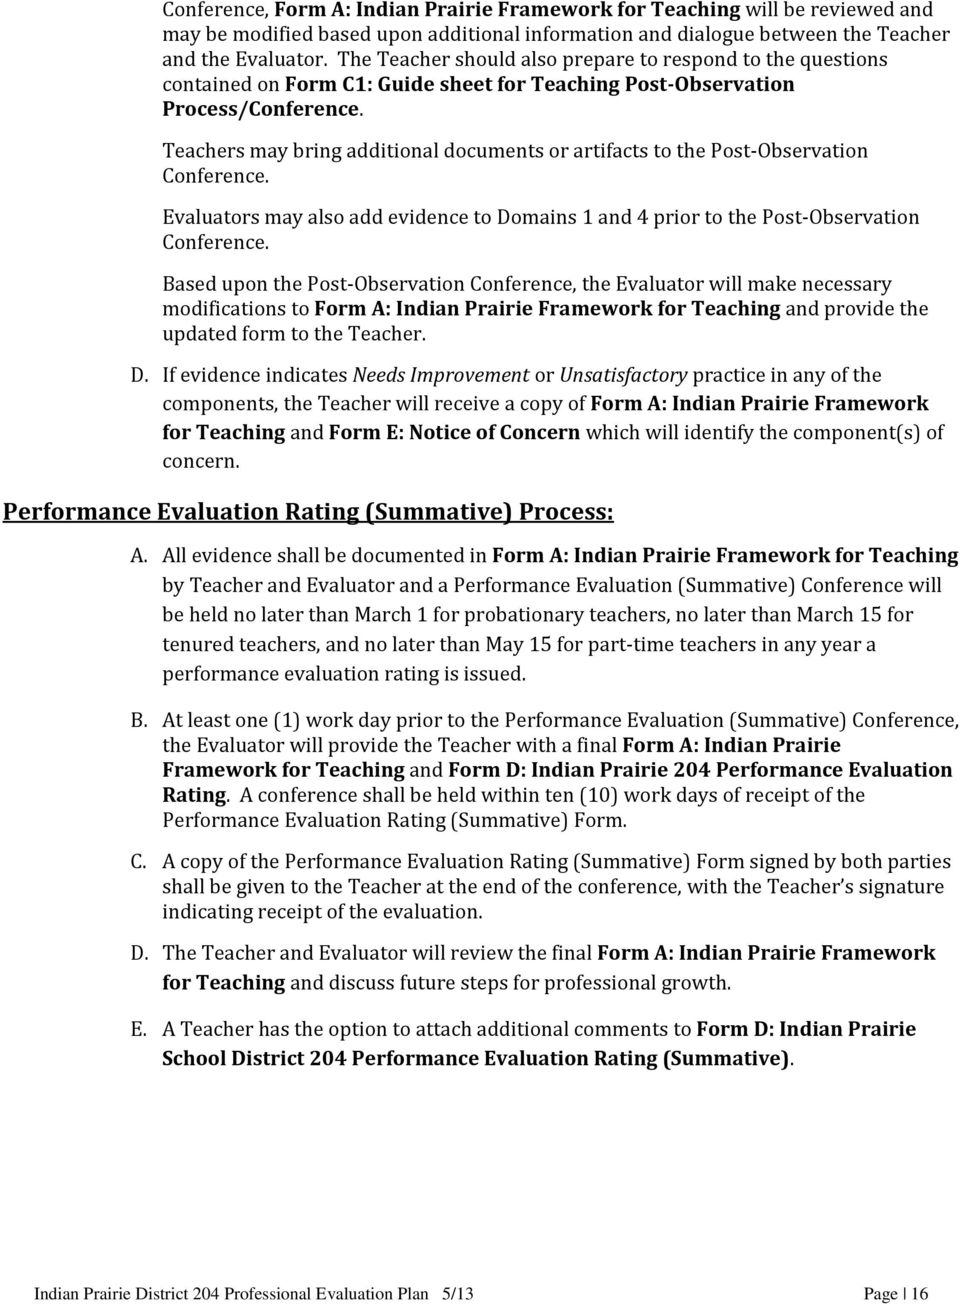 Lovely Teacher Observation Template Contemporary - Professional ...